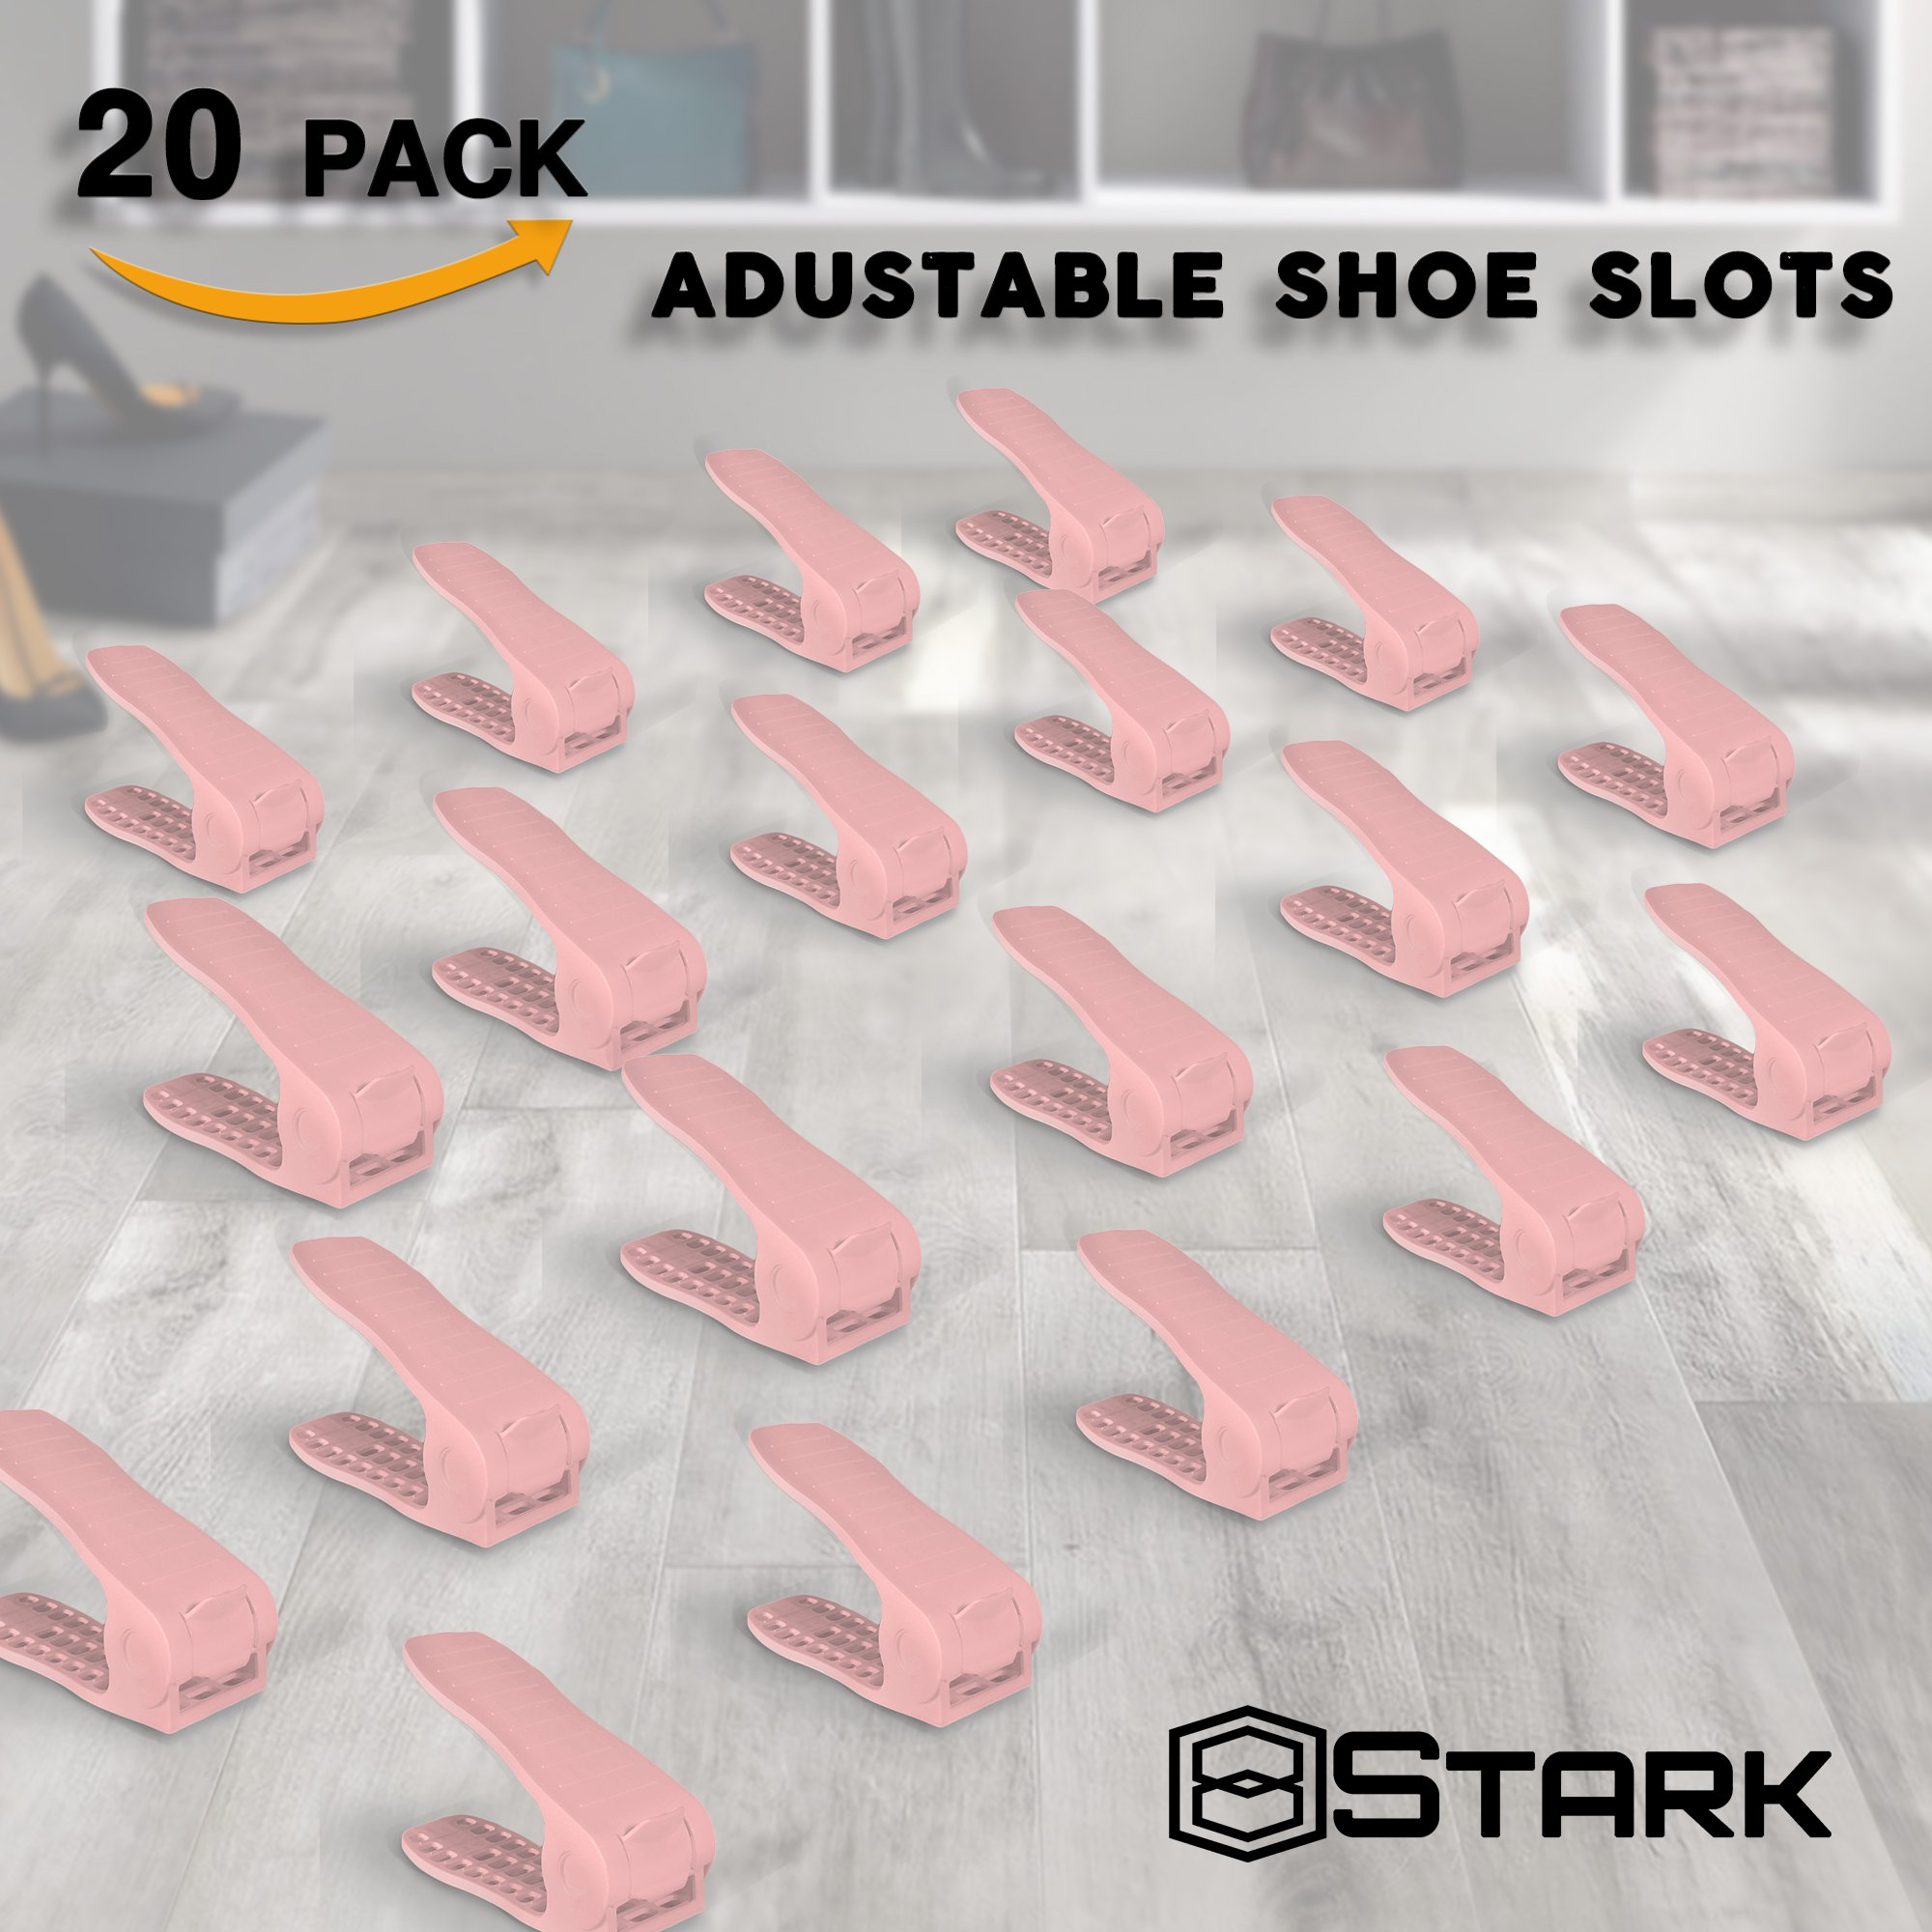 [UPGRADED] Shoe Organizer - Adjustable Display Closet Space Saver - Small Double Rack Shoe Slot for 1 Pair - Pink - 20 Pcs